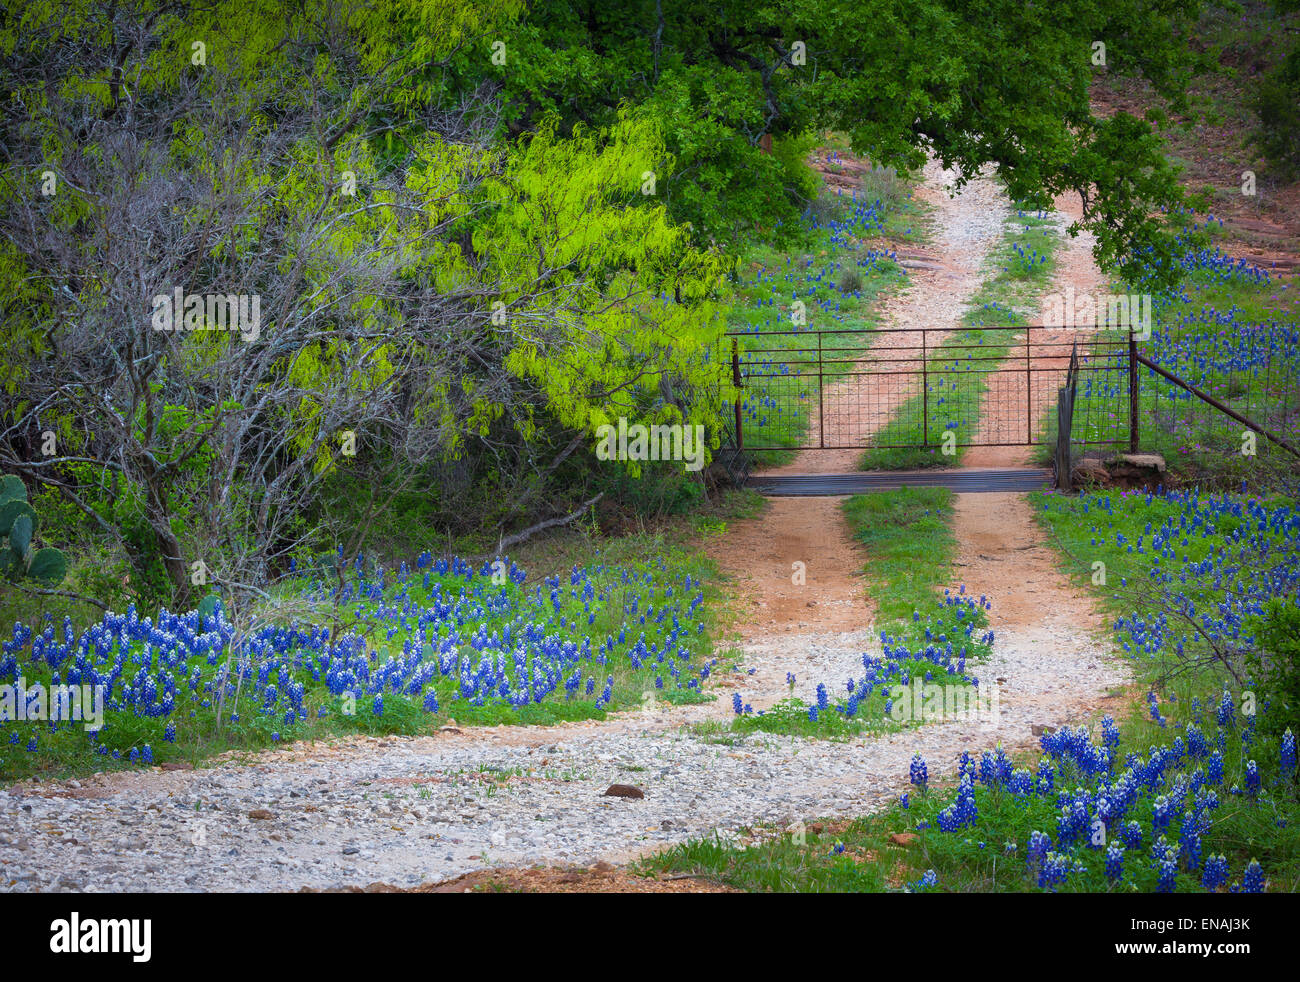 Small gravel road lines with bluebonnets, near Willow City in the Texas Hill Country - Stock Image